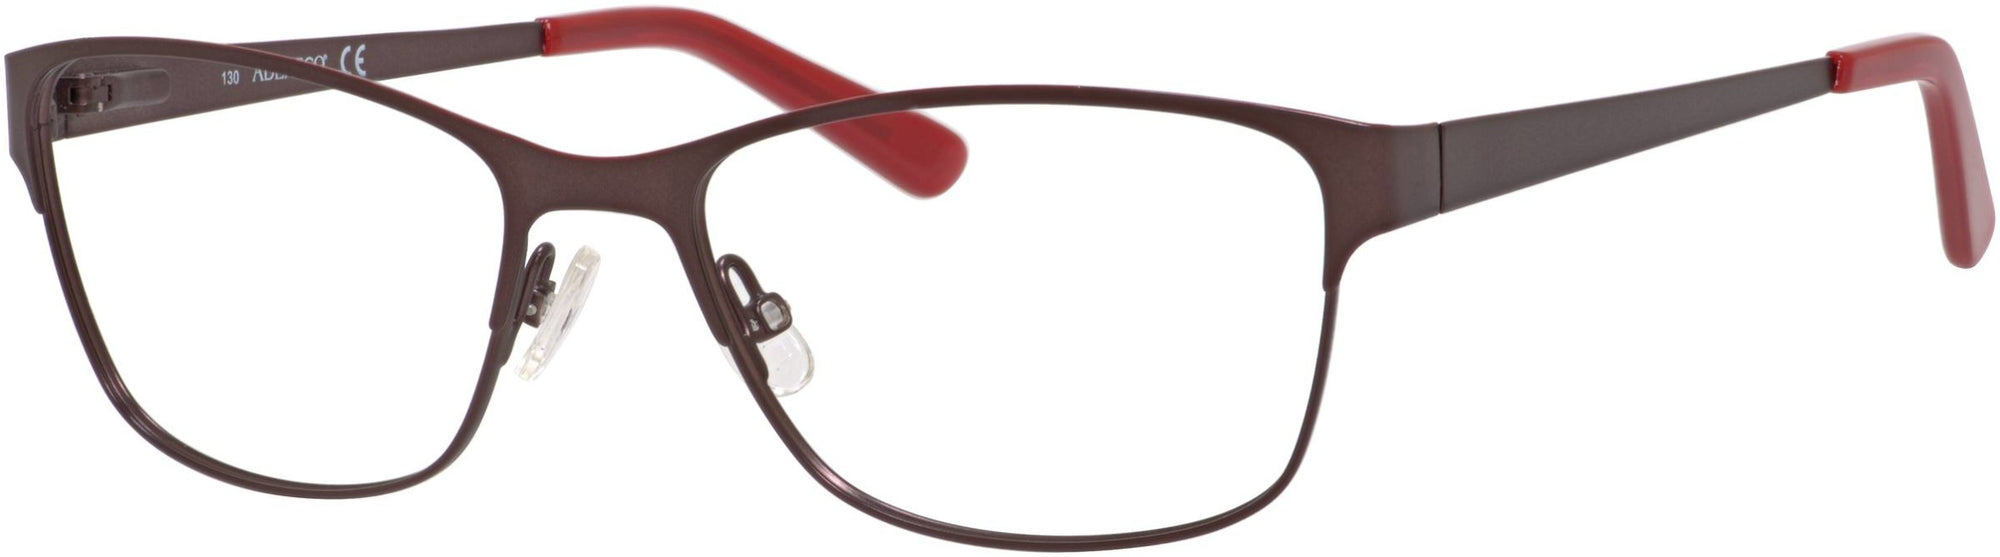 Adensco AD 205 Rectangular Eyeglasses 0ESJ-0ESJ  Brown (00 Demo Lens)